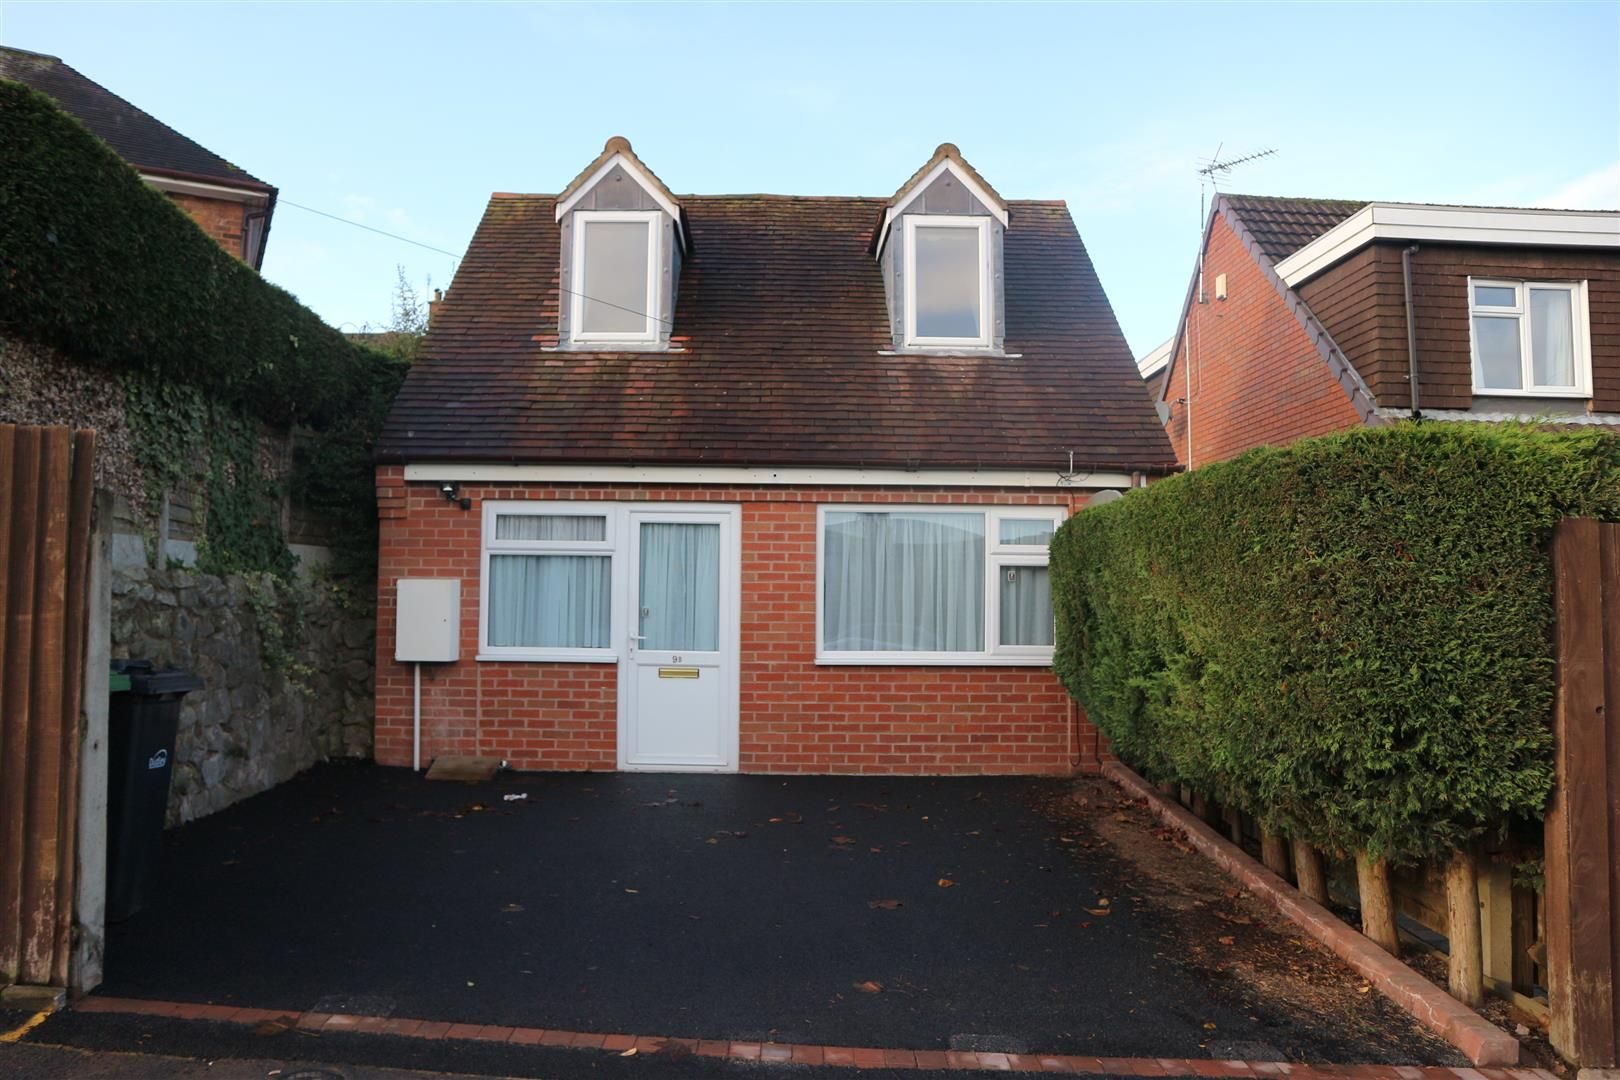 1 bed house for sale, DY8